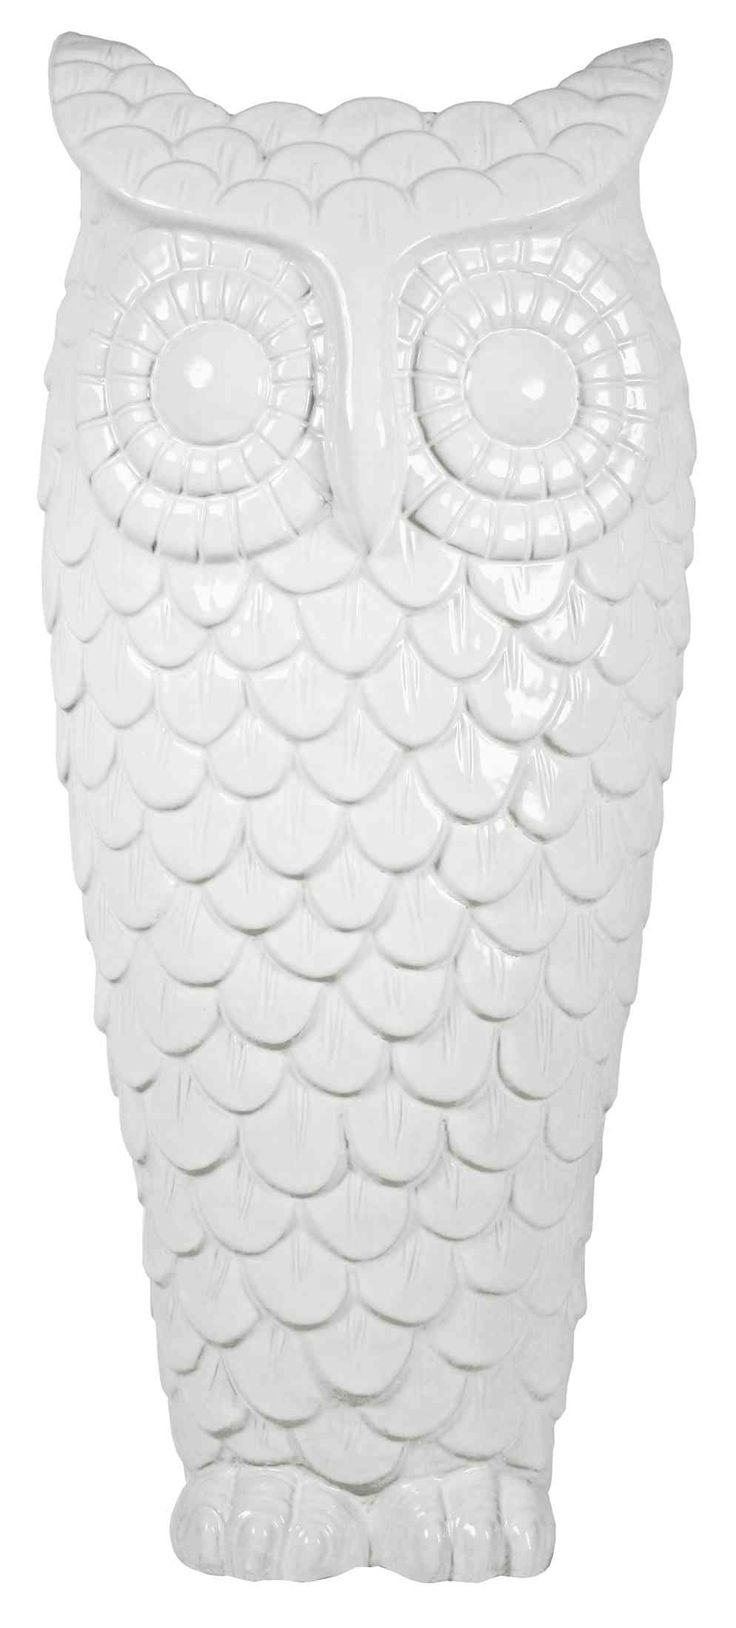 20 Awesome Pier 1 Owl Vase